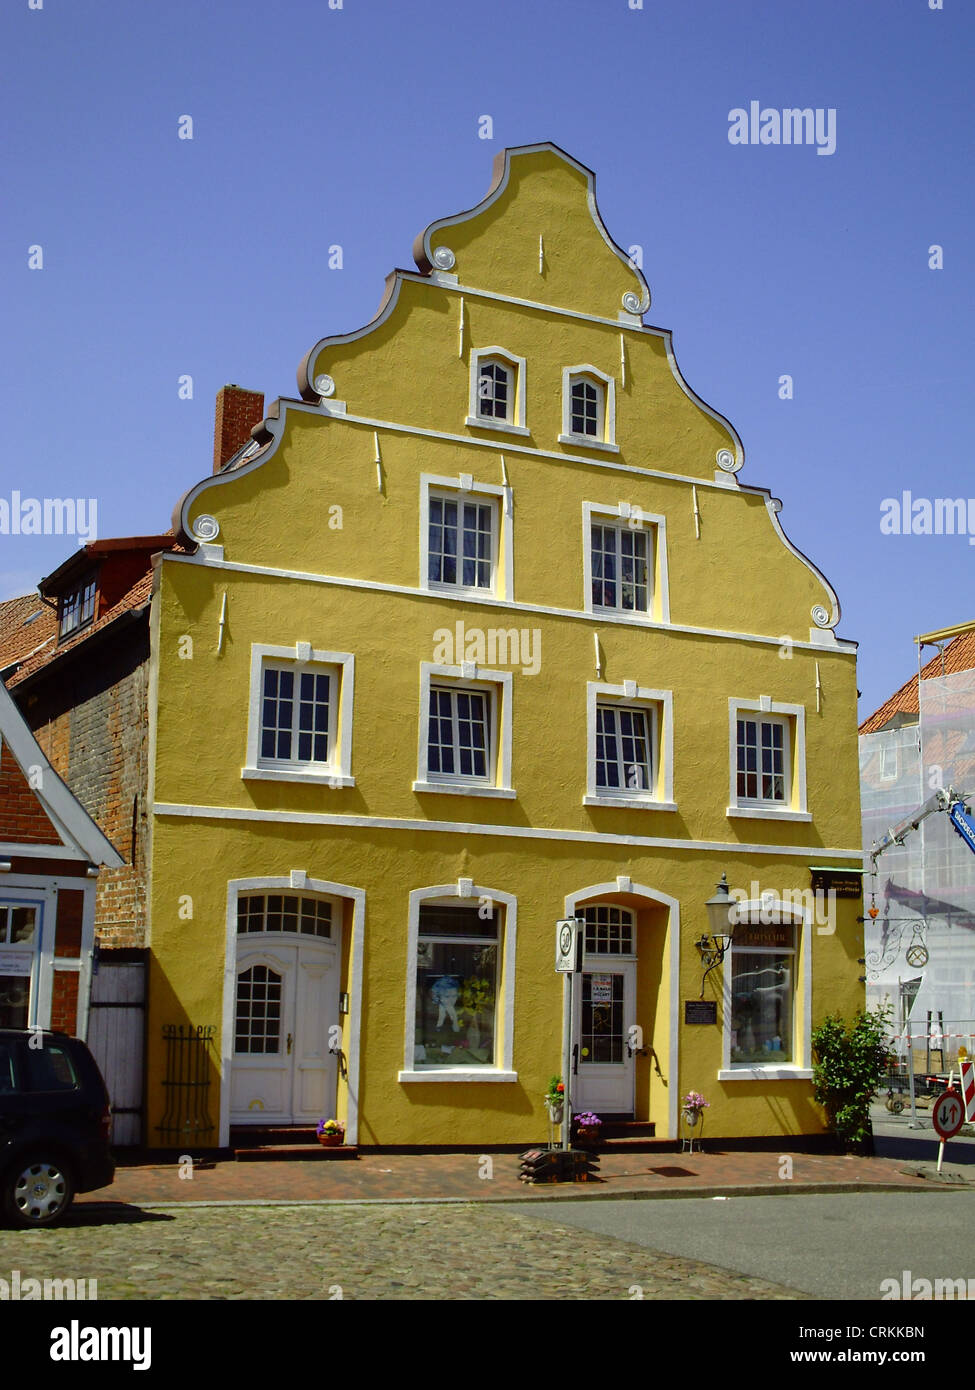 Baroque gable house in Otterndorf, Lower Saxony, Germany - Stock Image